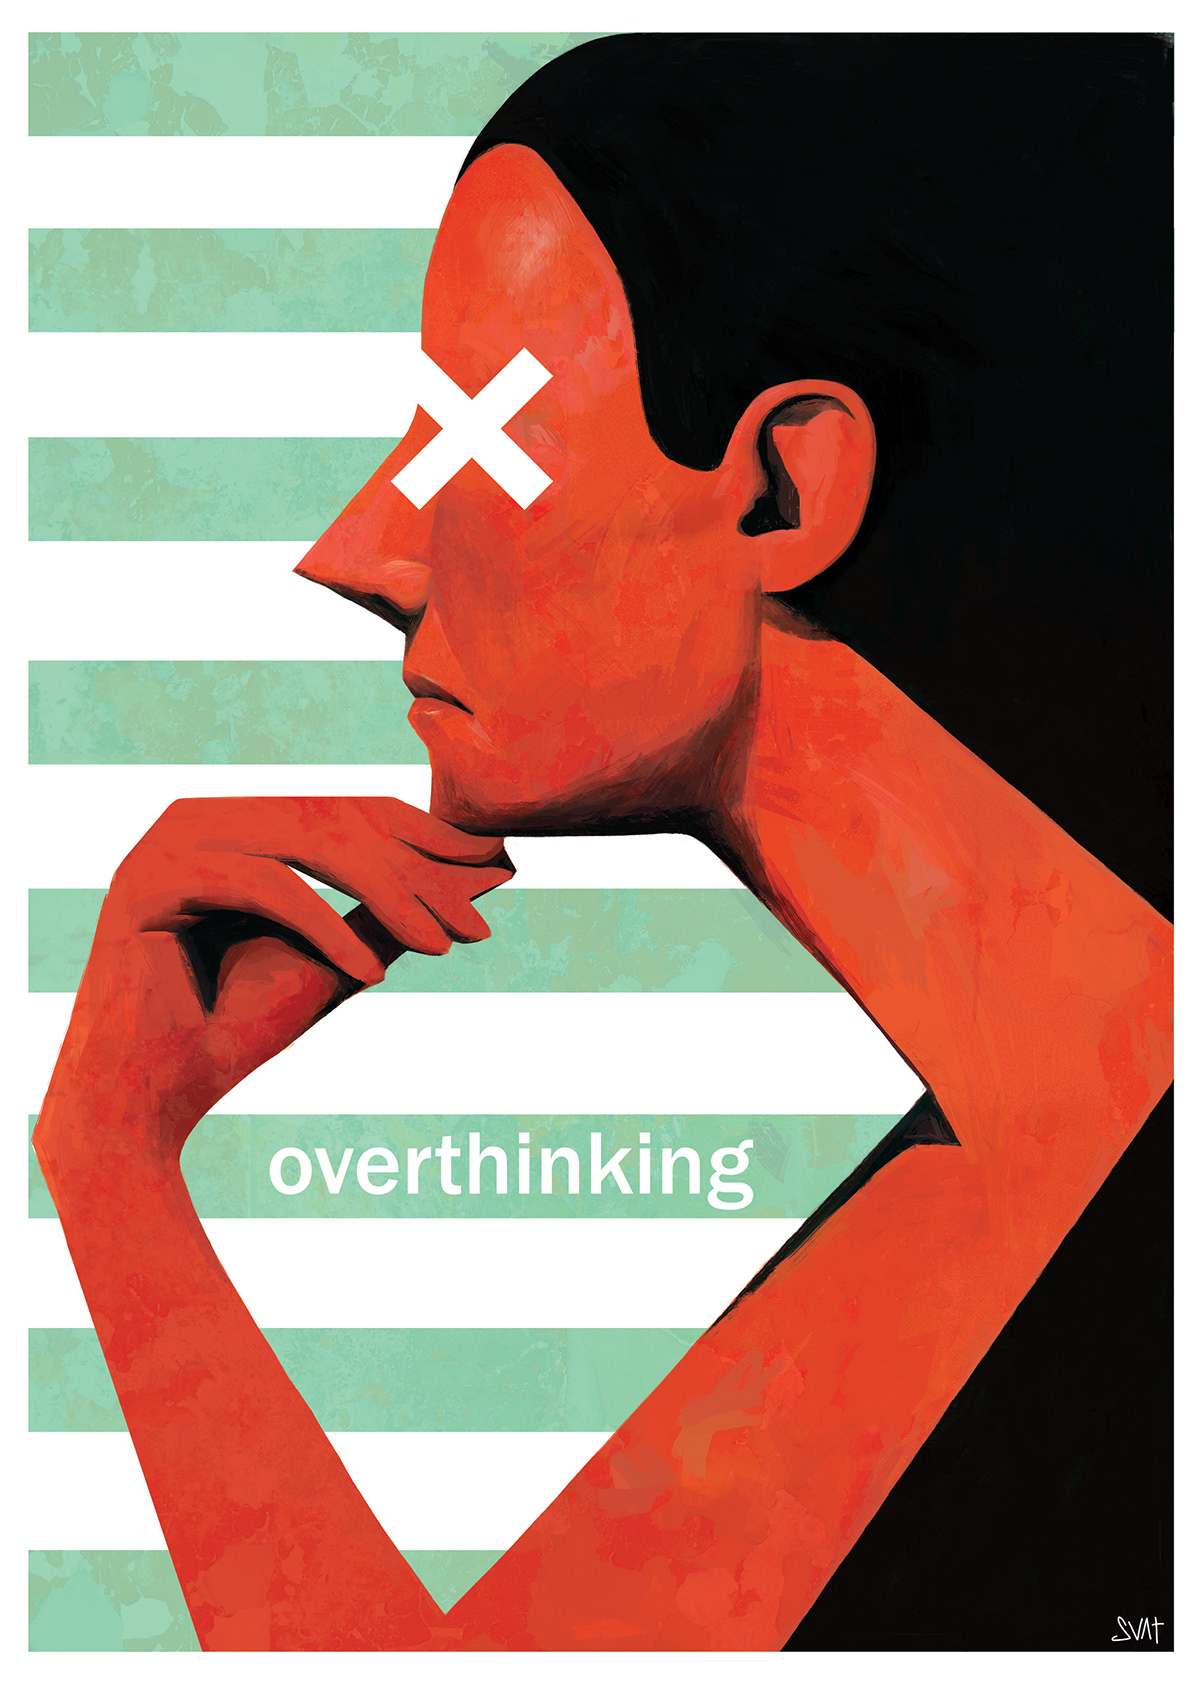 'Overthinking - How much is too much?' Portrait of a wondering lady with eyes crossed.